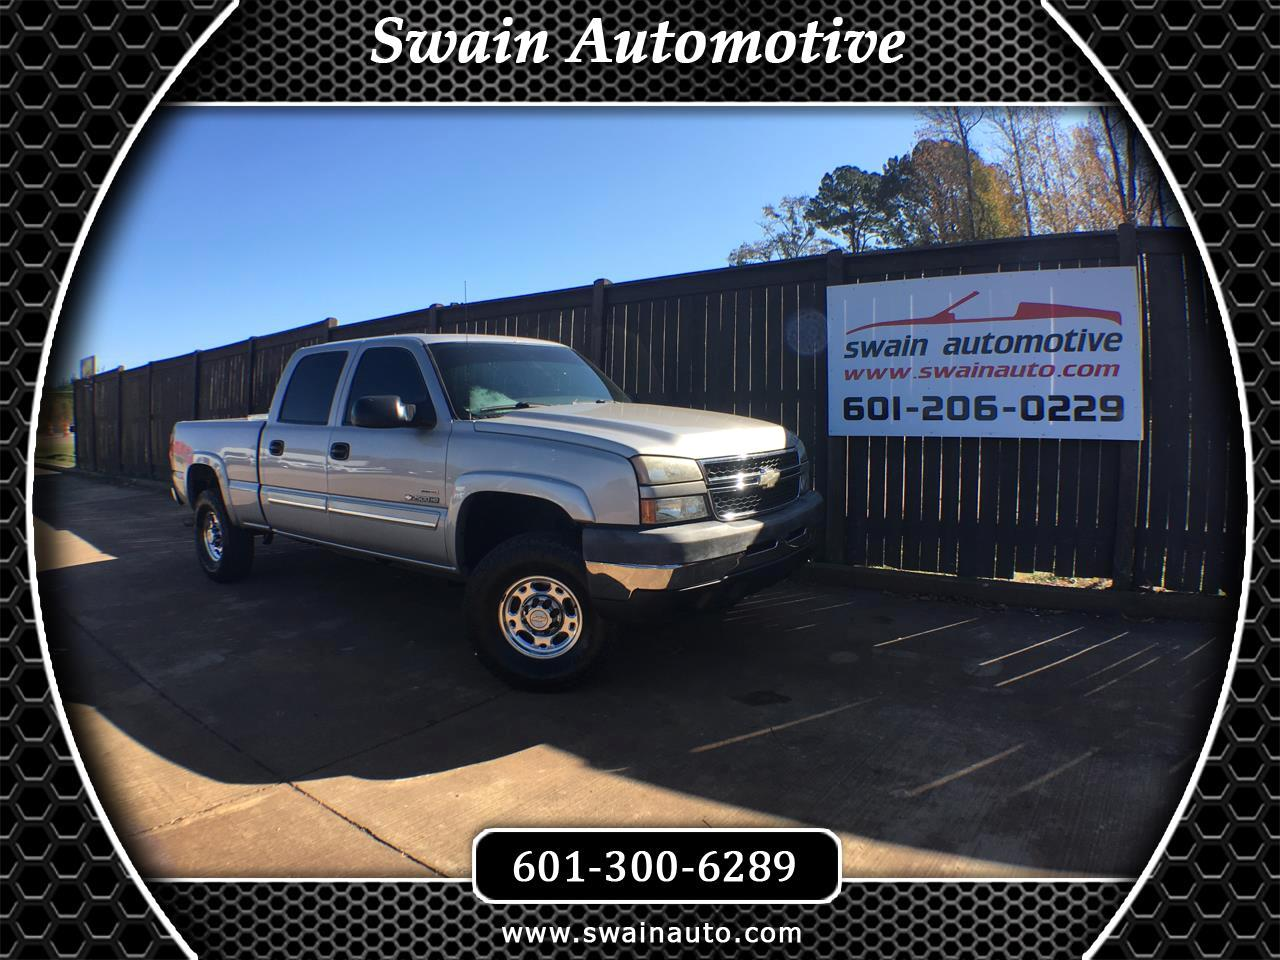 2005 Chevrolet Silverado 2500HD Crew Cab Short Bed 2WD